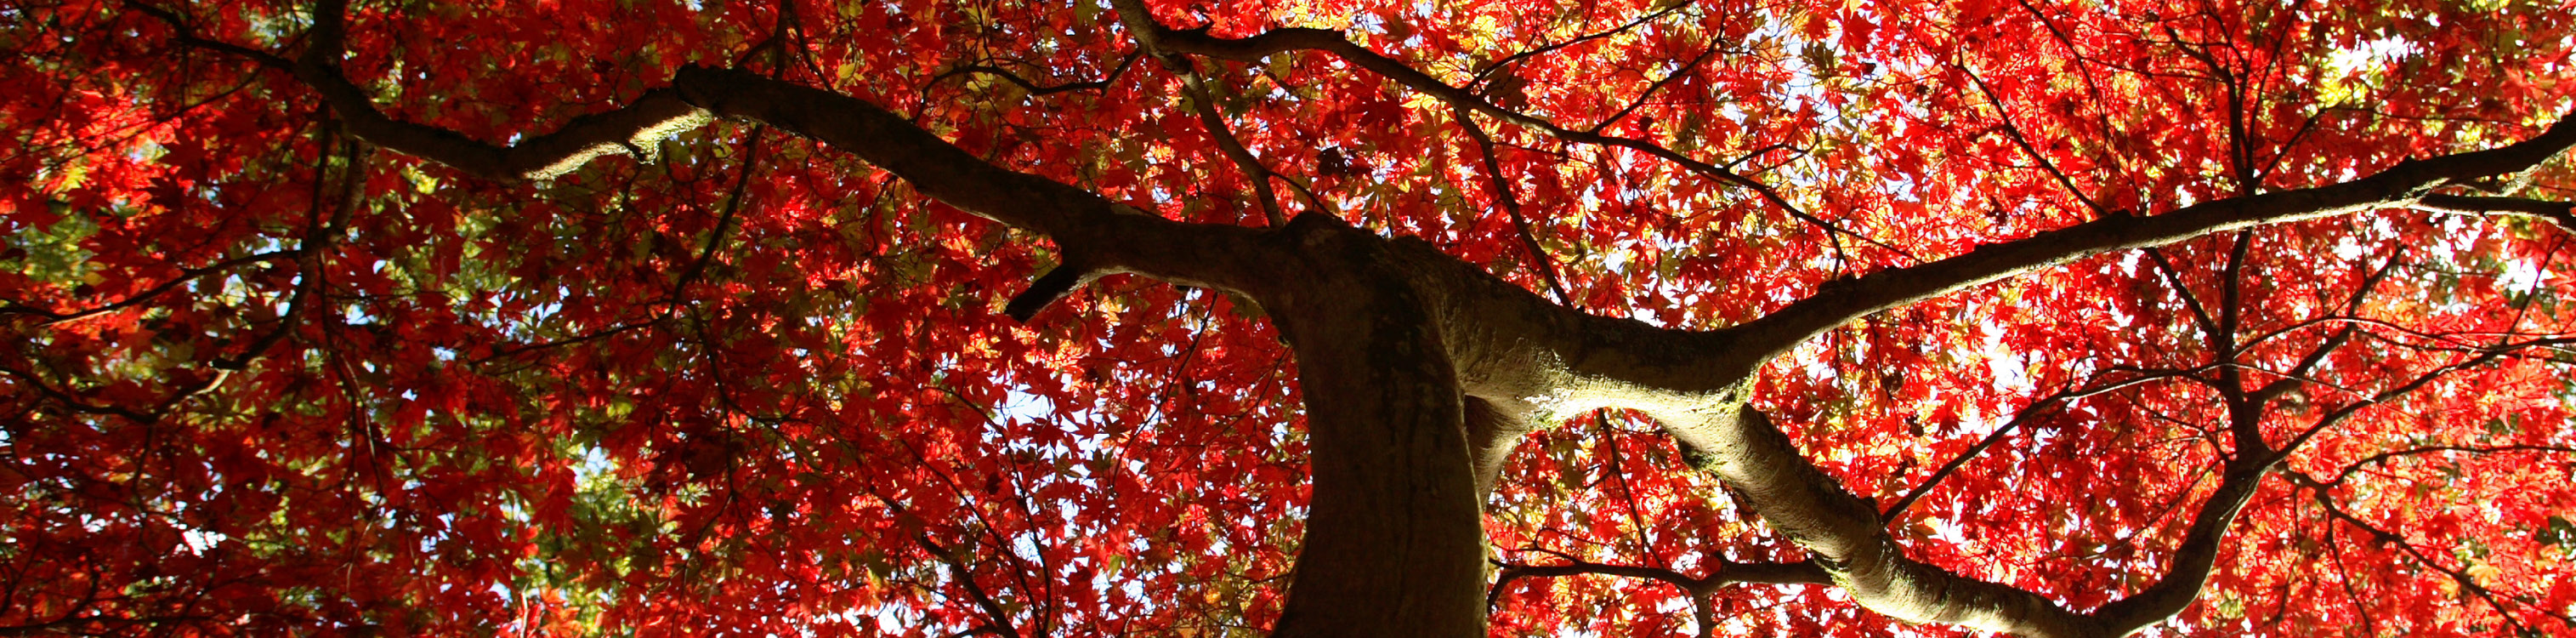 Looking up at an autumnal tree full of red leaves with glimmers of sunlight